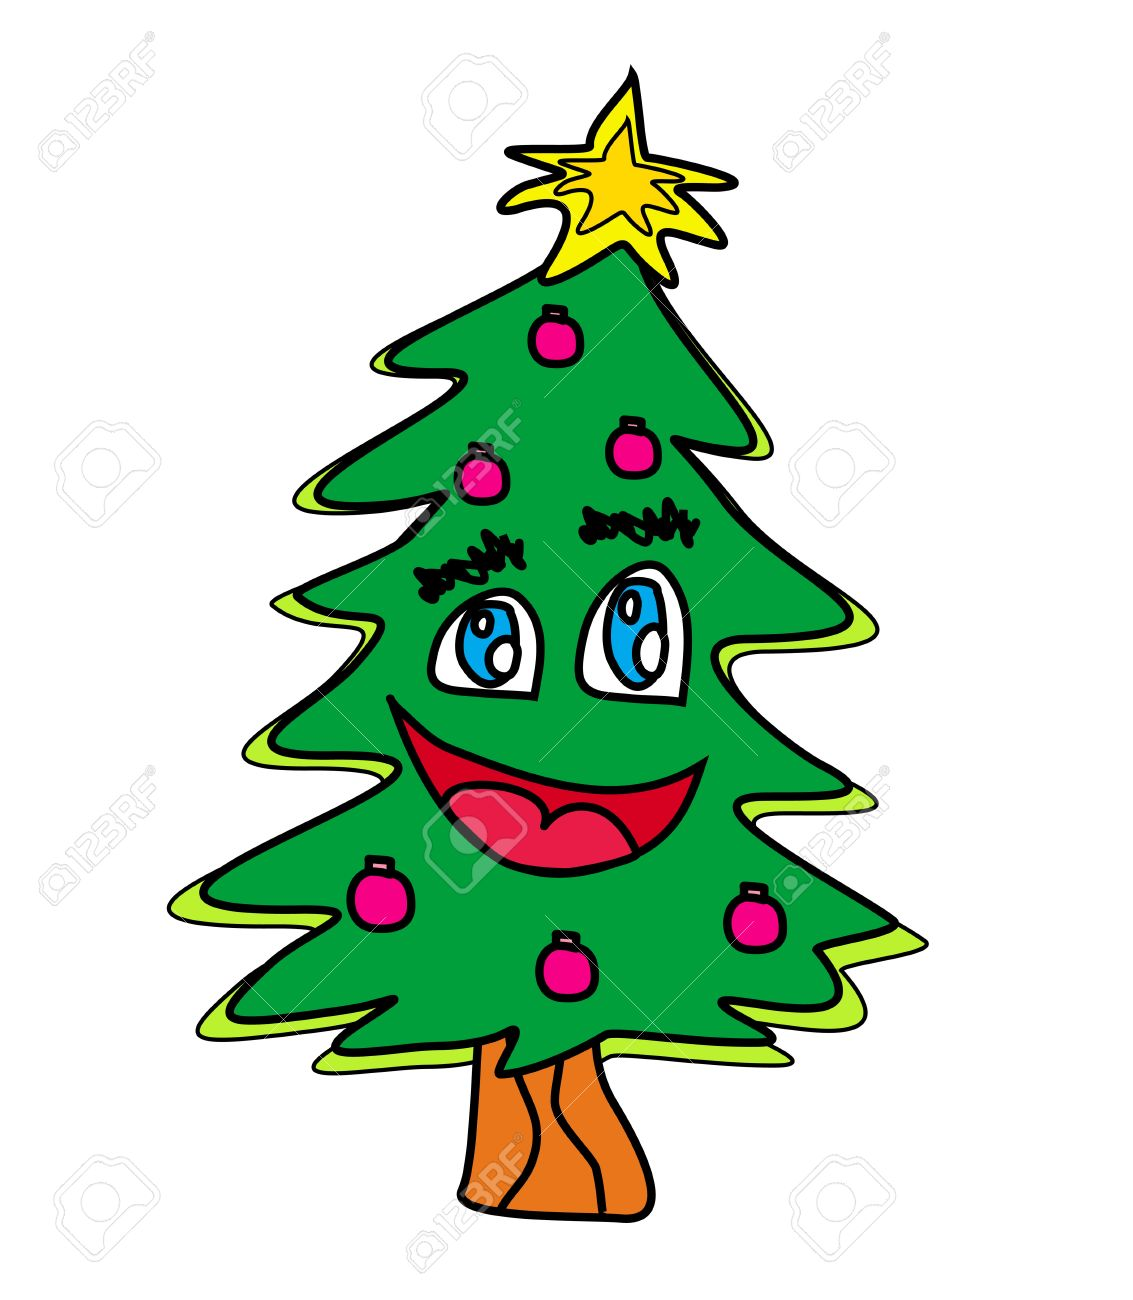 Christmas Tree Cartoon Character Royalty Free Cliparts Vectors And Stock Illustration Image 15975202 Justin roiland has voiced characters like oscar from fish hooks, lemongrab from at, and. christmas tree cartoon character